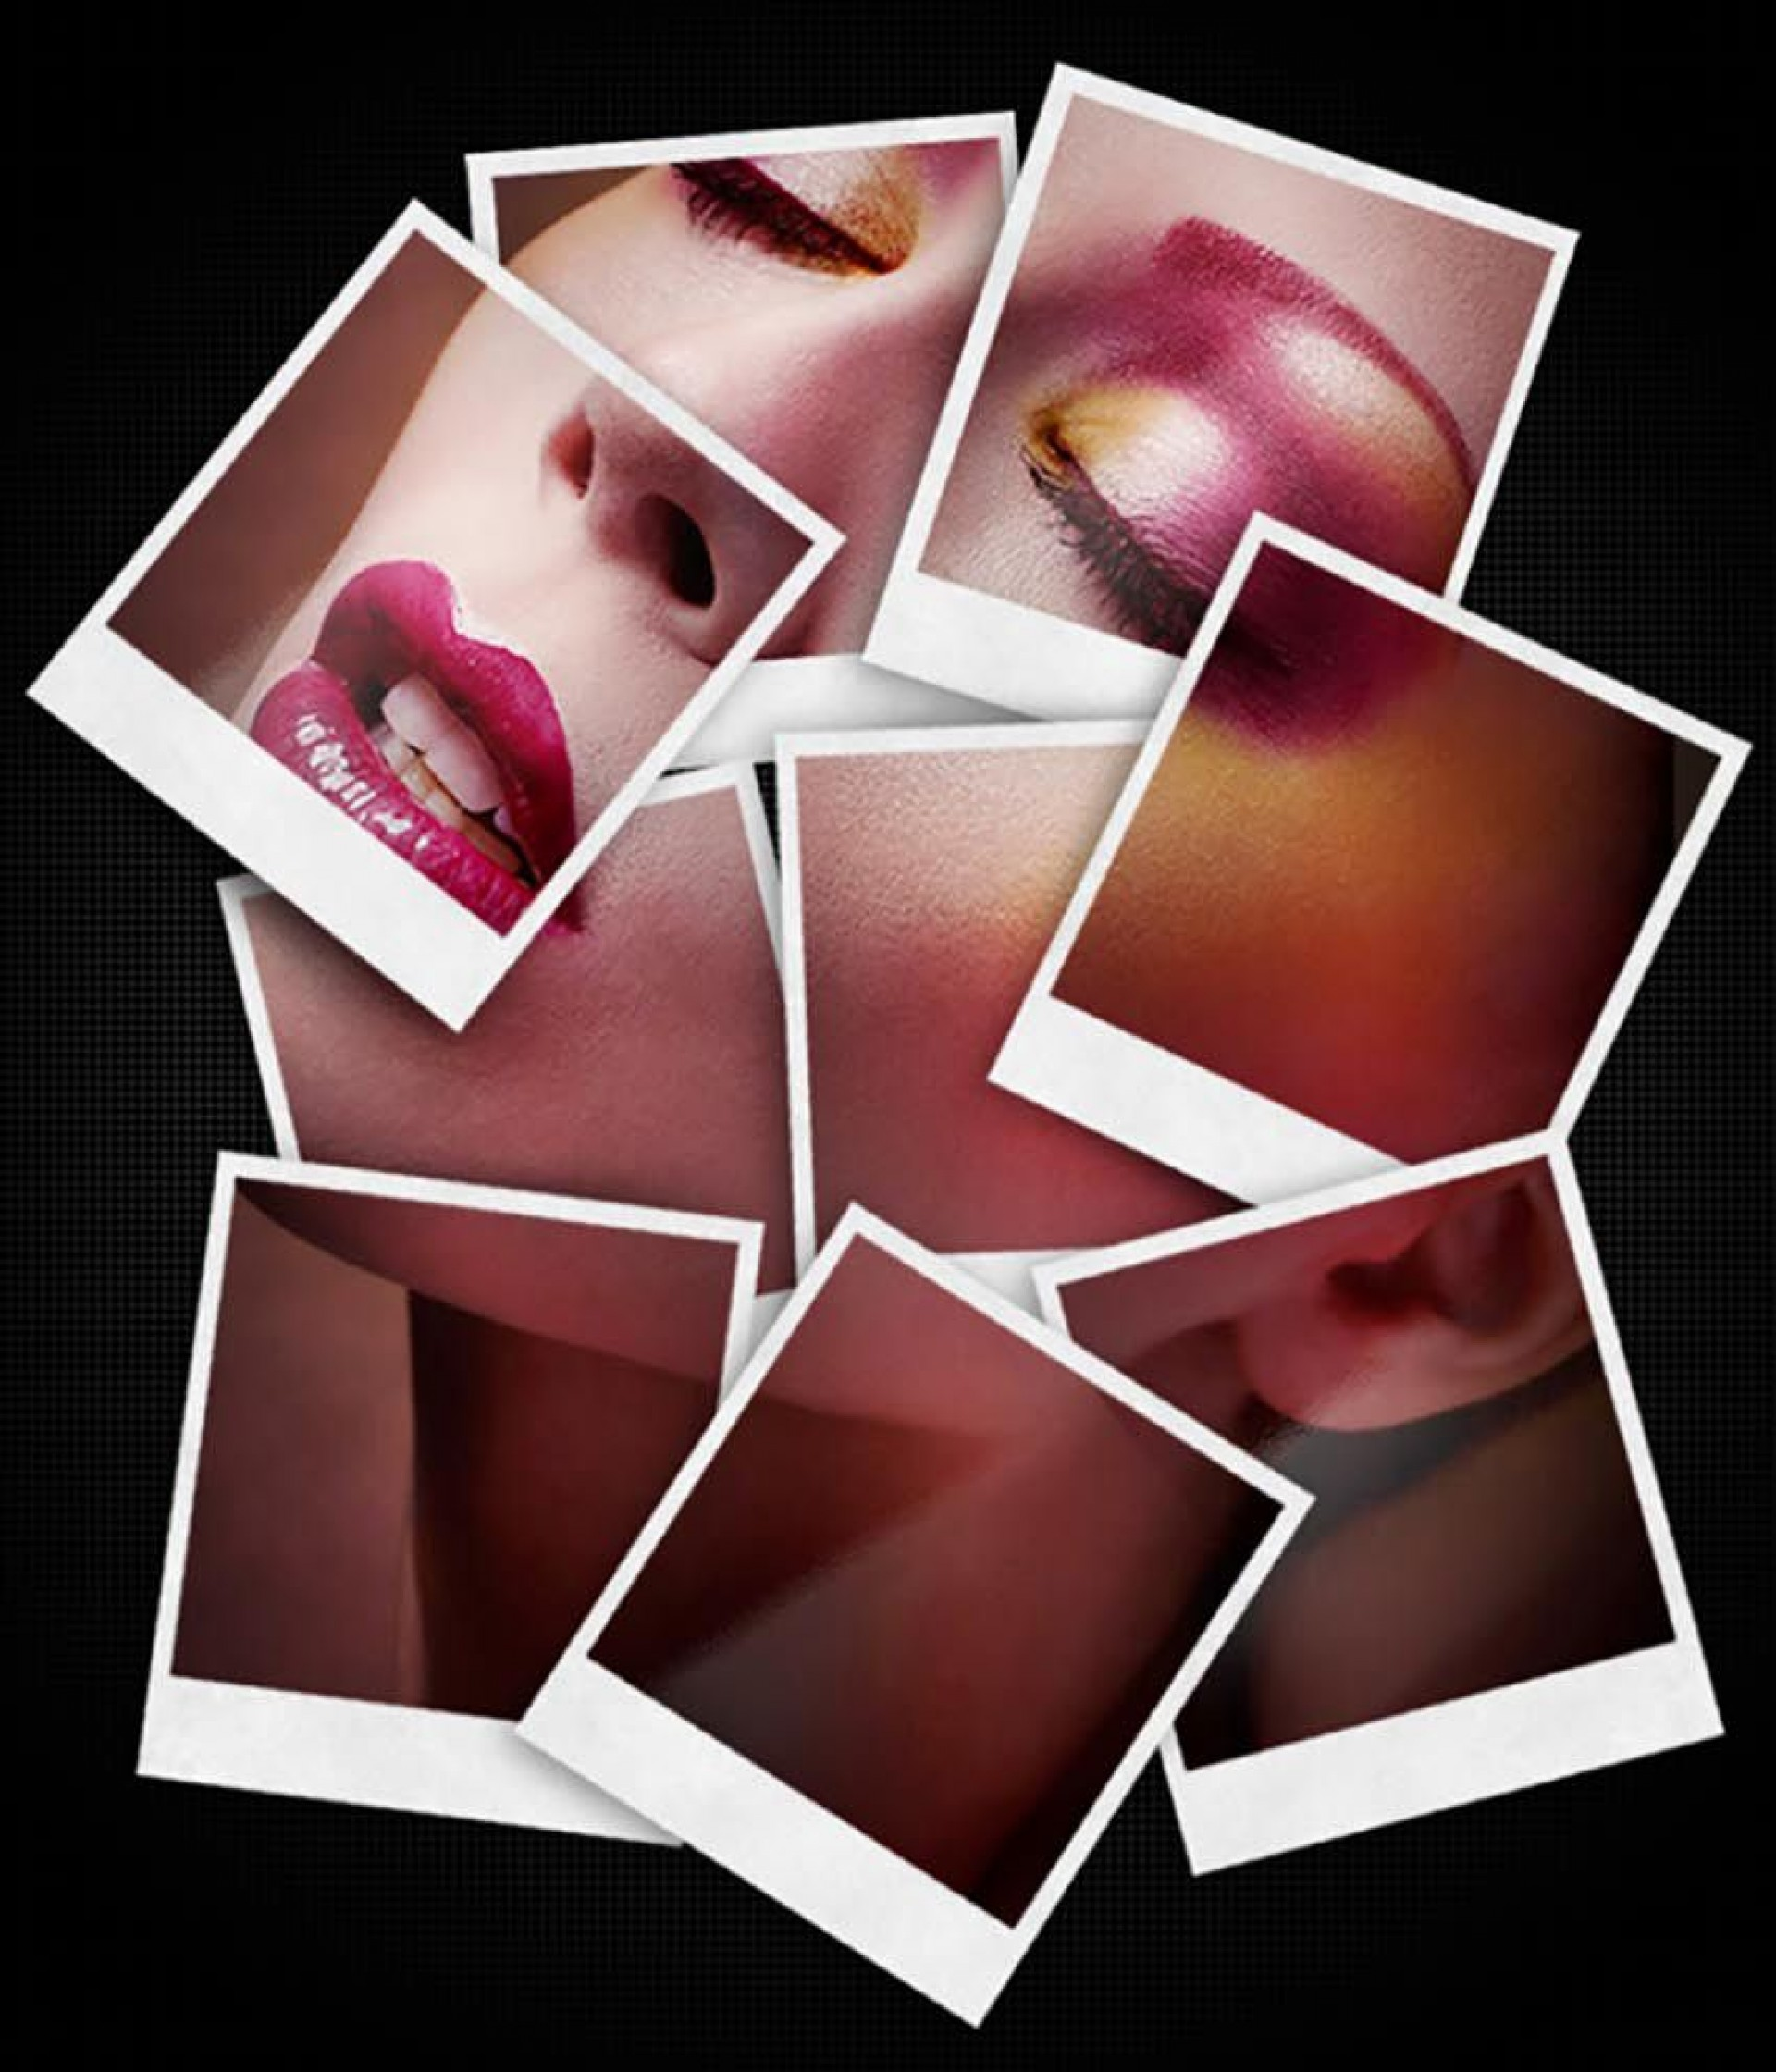 002 Staggering Free Photo Collage Template Download Picture  Psd Powerpoint1920